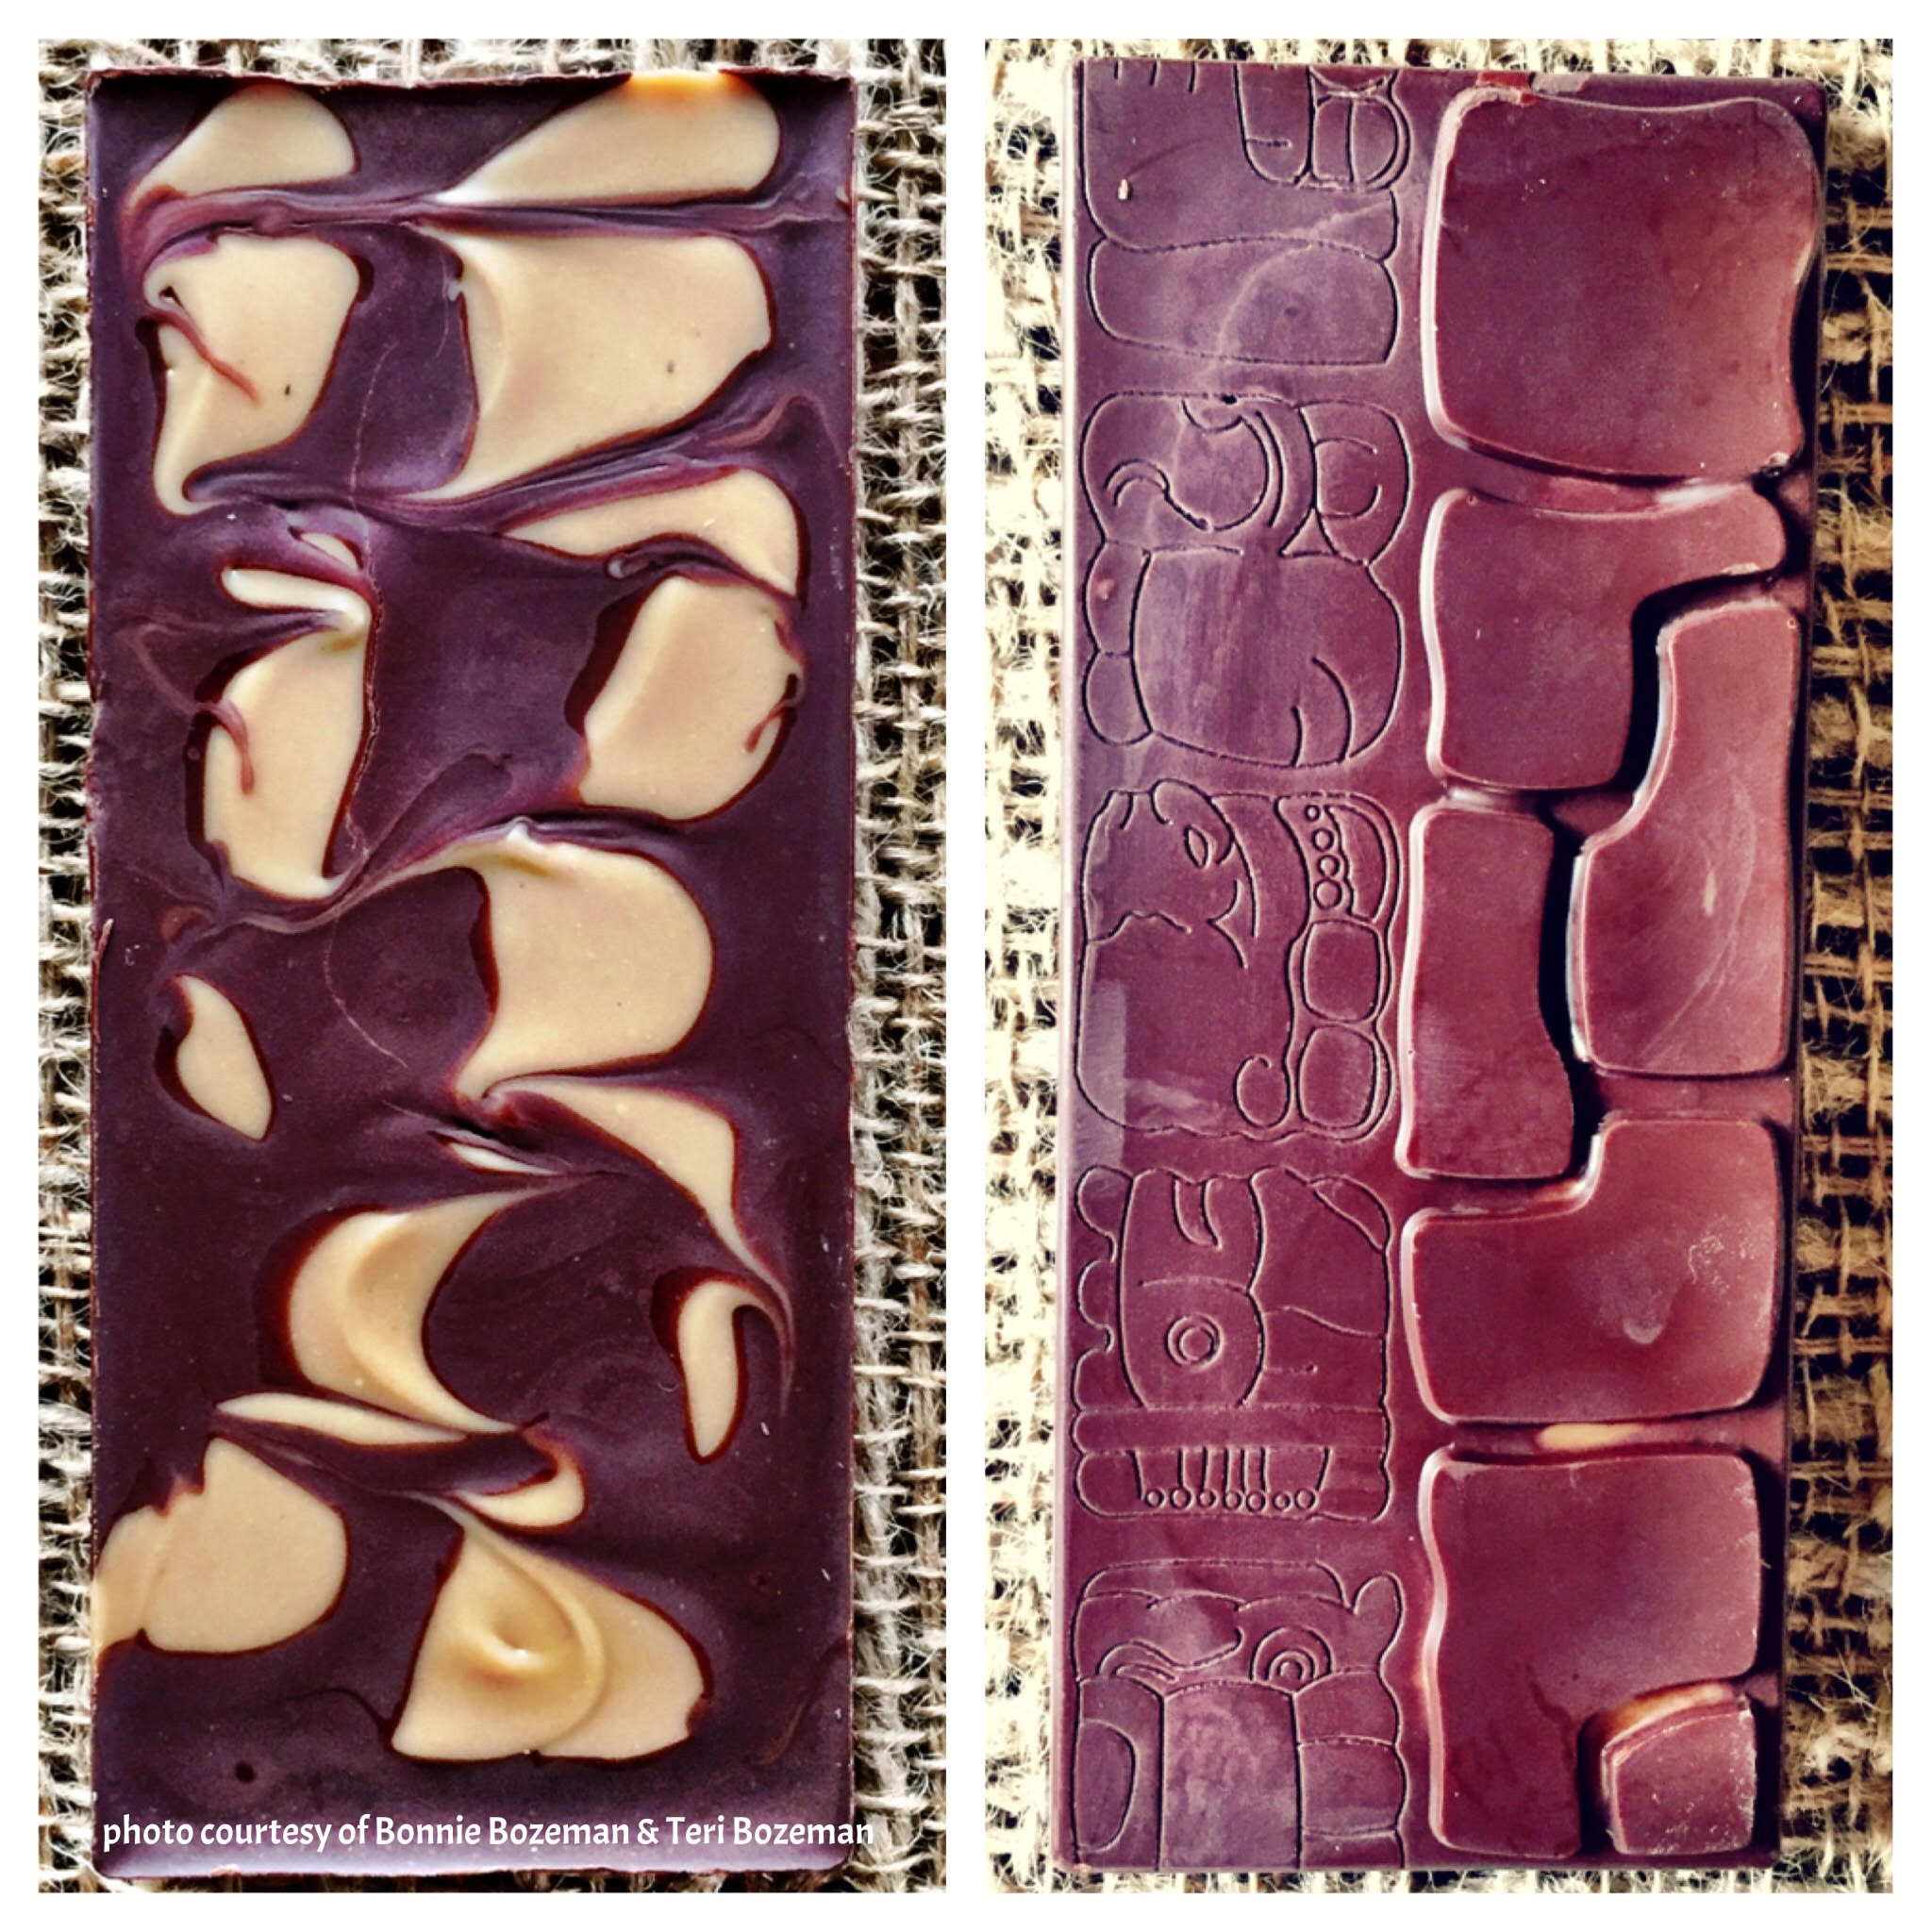 Madre Jaguar Cacao Bar.jpg